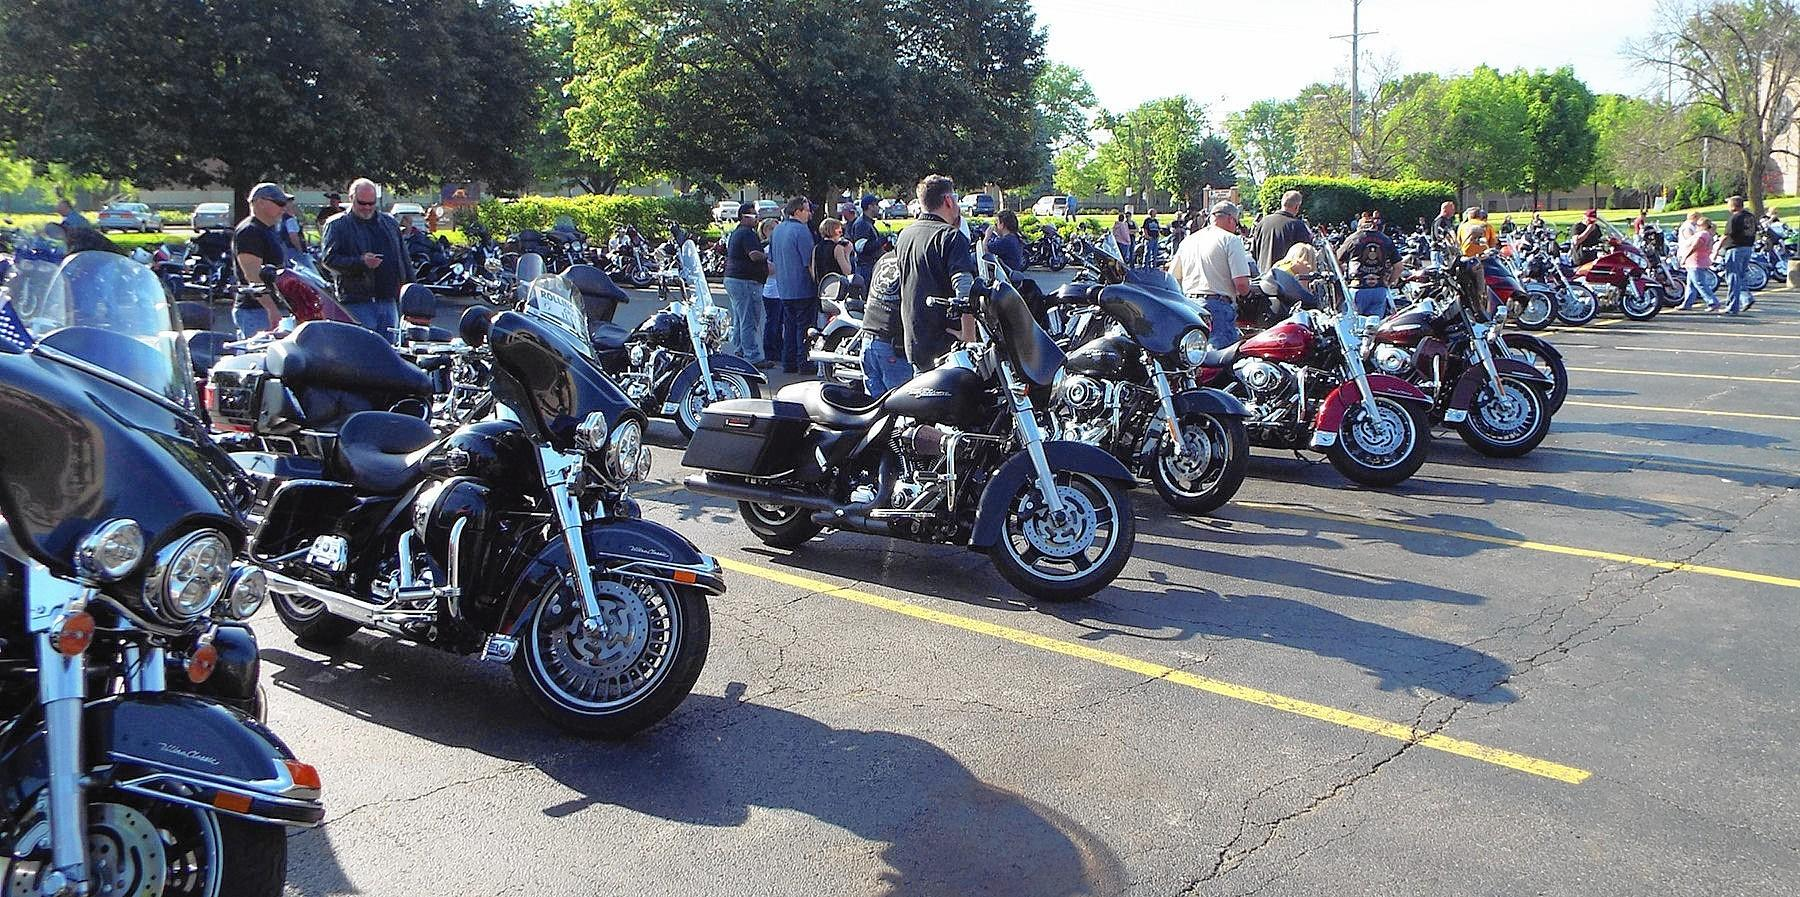 More than 200 motorcycle riders raised awareness and funds for mental health treatment Saturday, traveling from the Linden Oaks at Edward outpatient center in Naperville to a barbecue at a Harley-Davidson dealer near Starved Rock State Park.